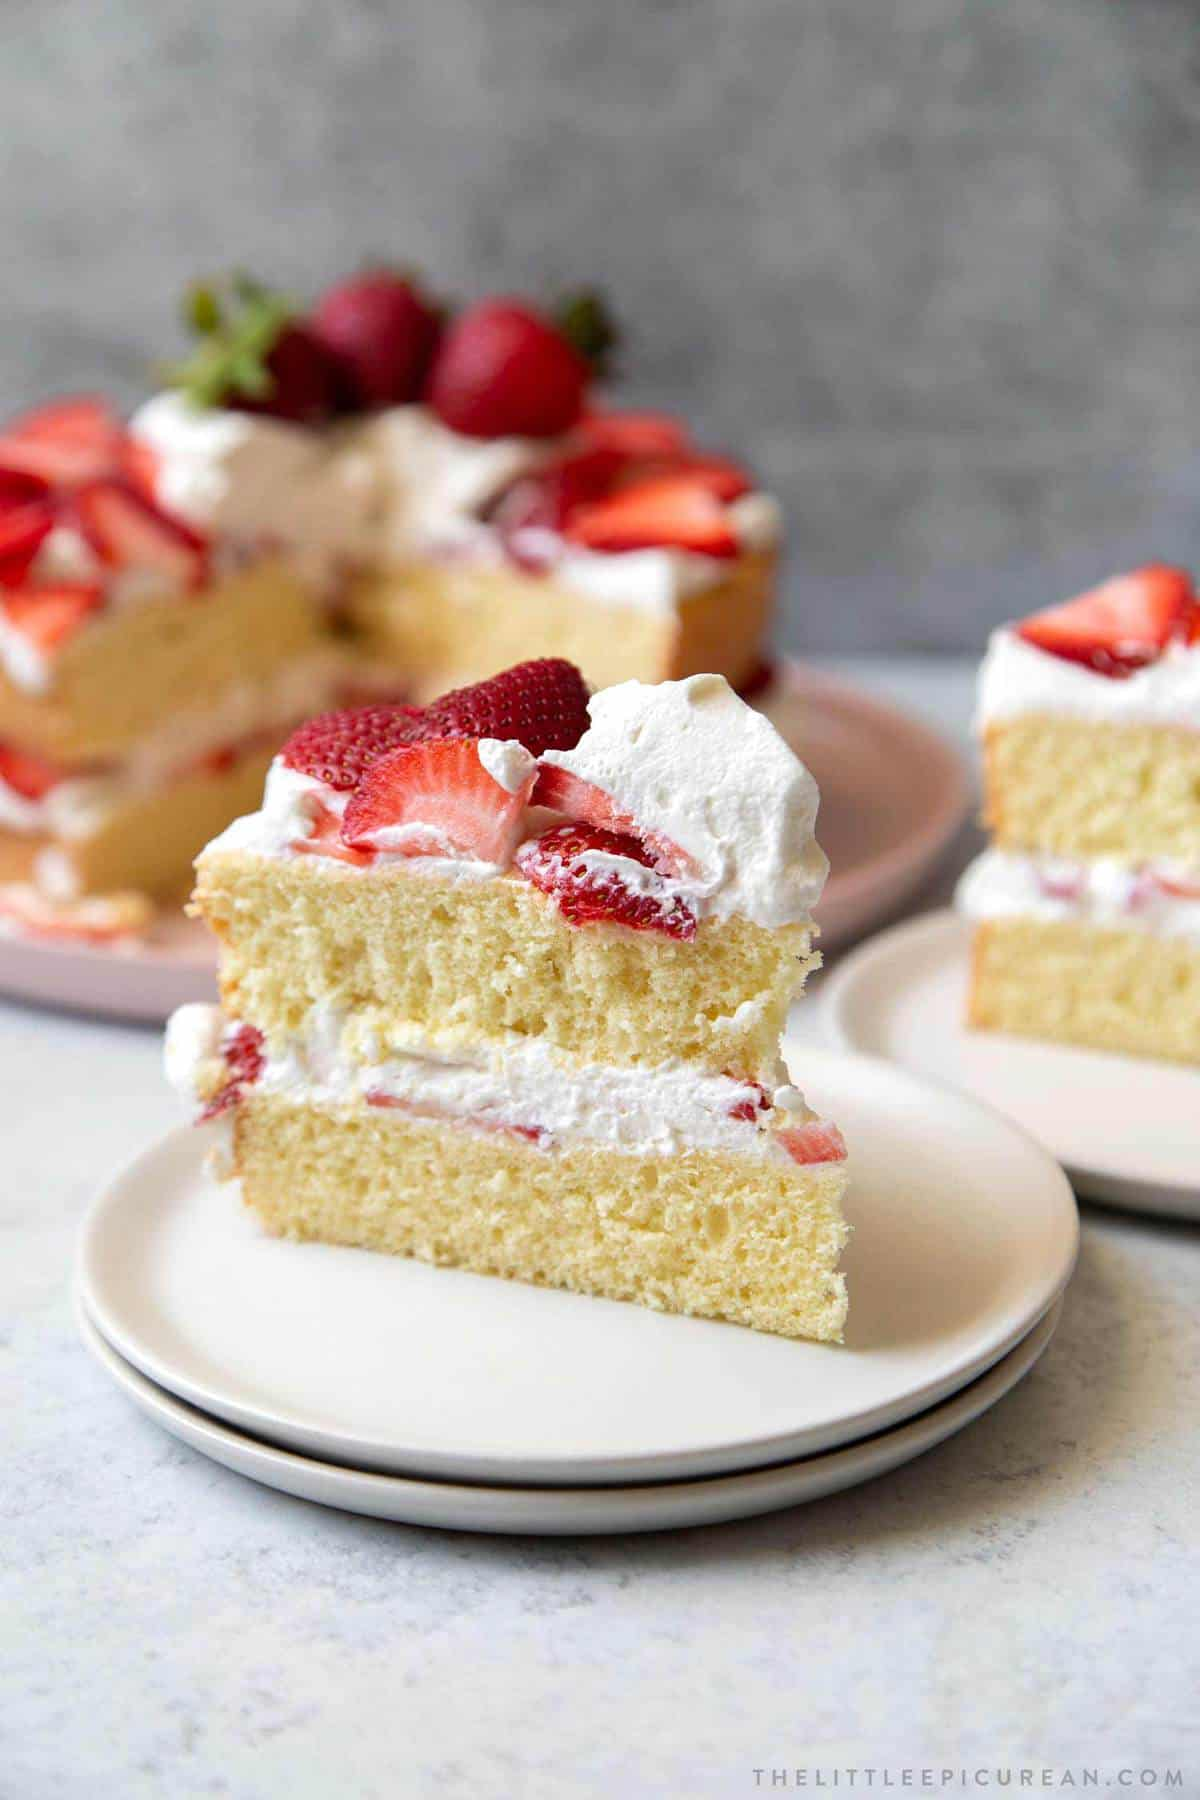 strawberry cake slice with whipped cream frosting.